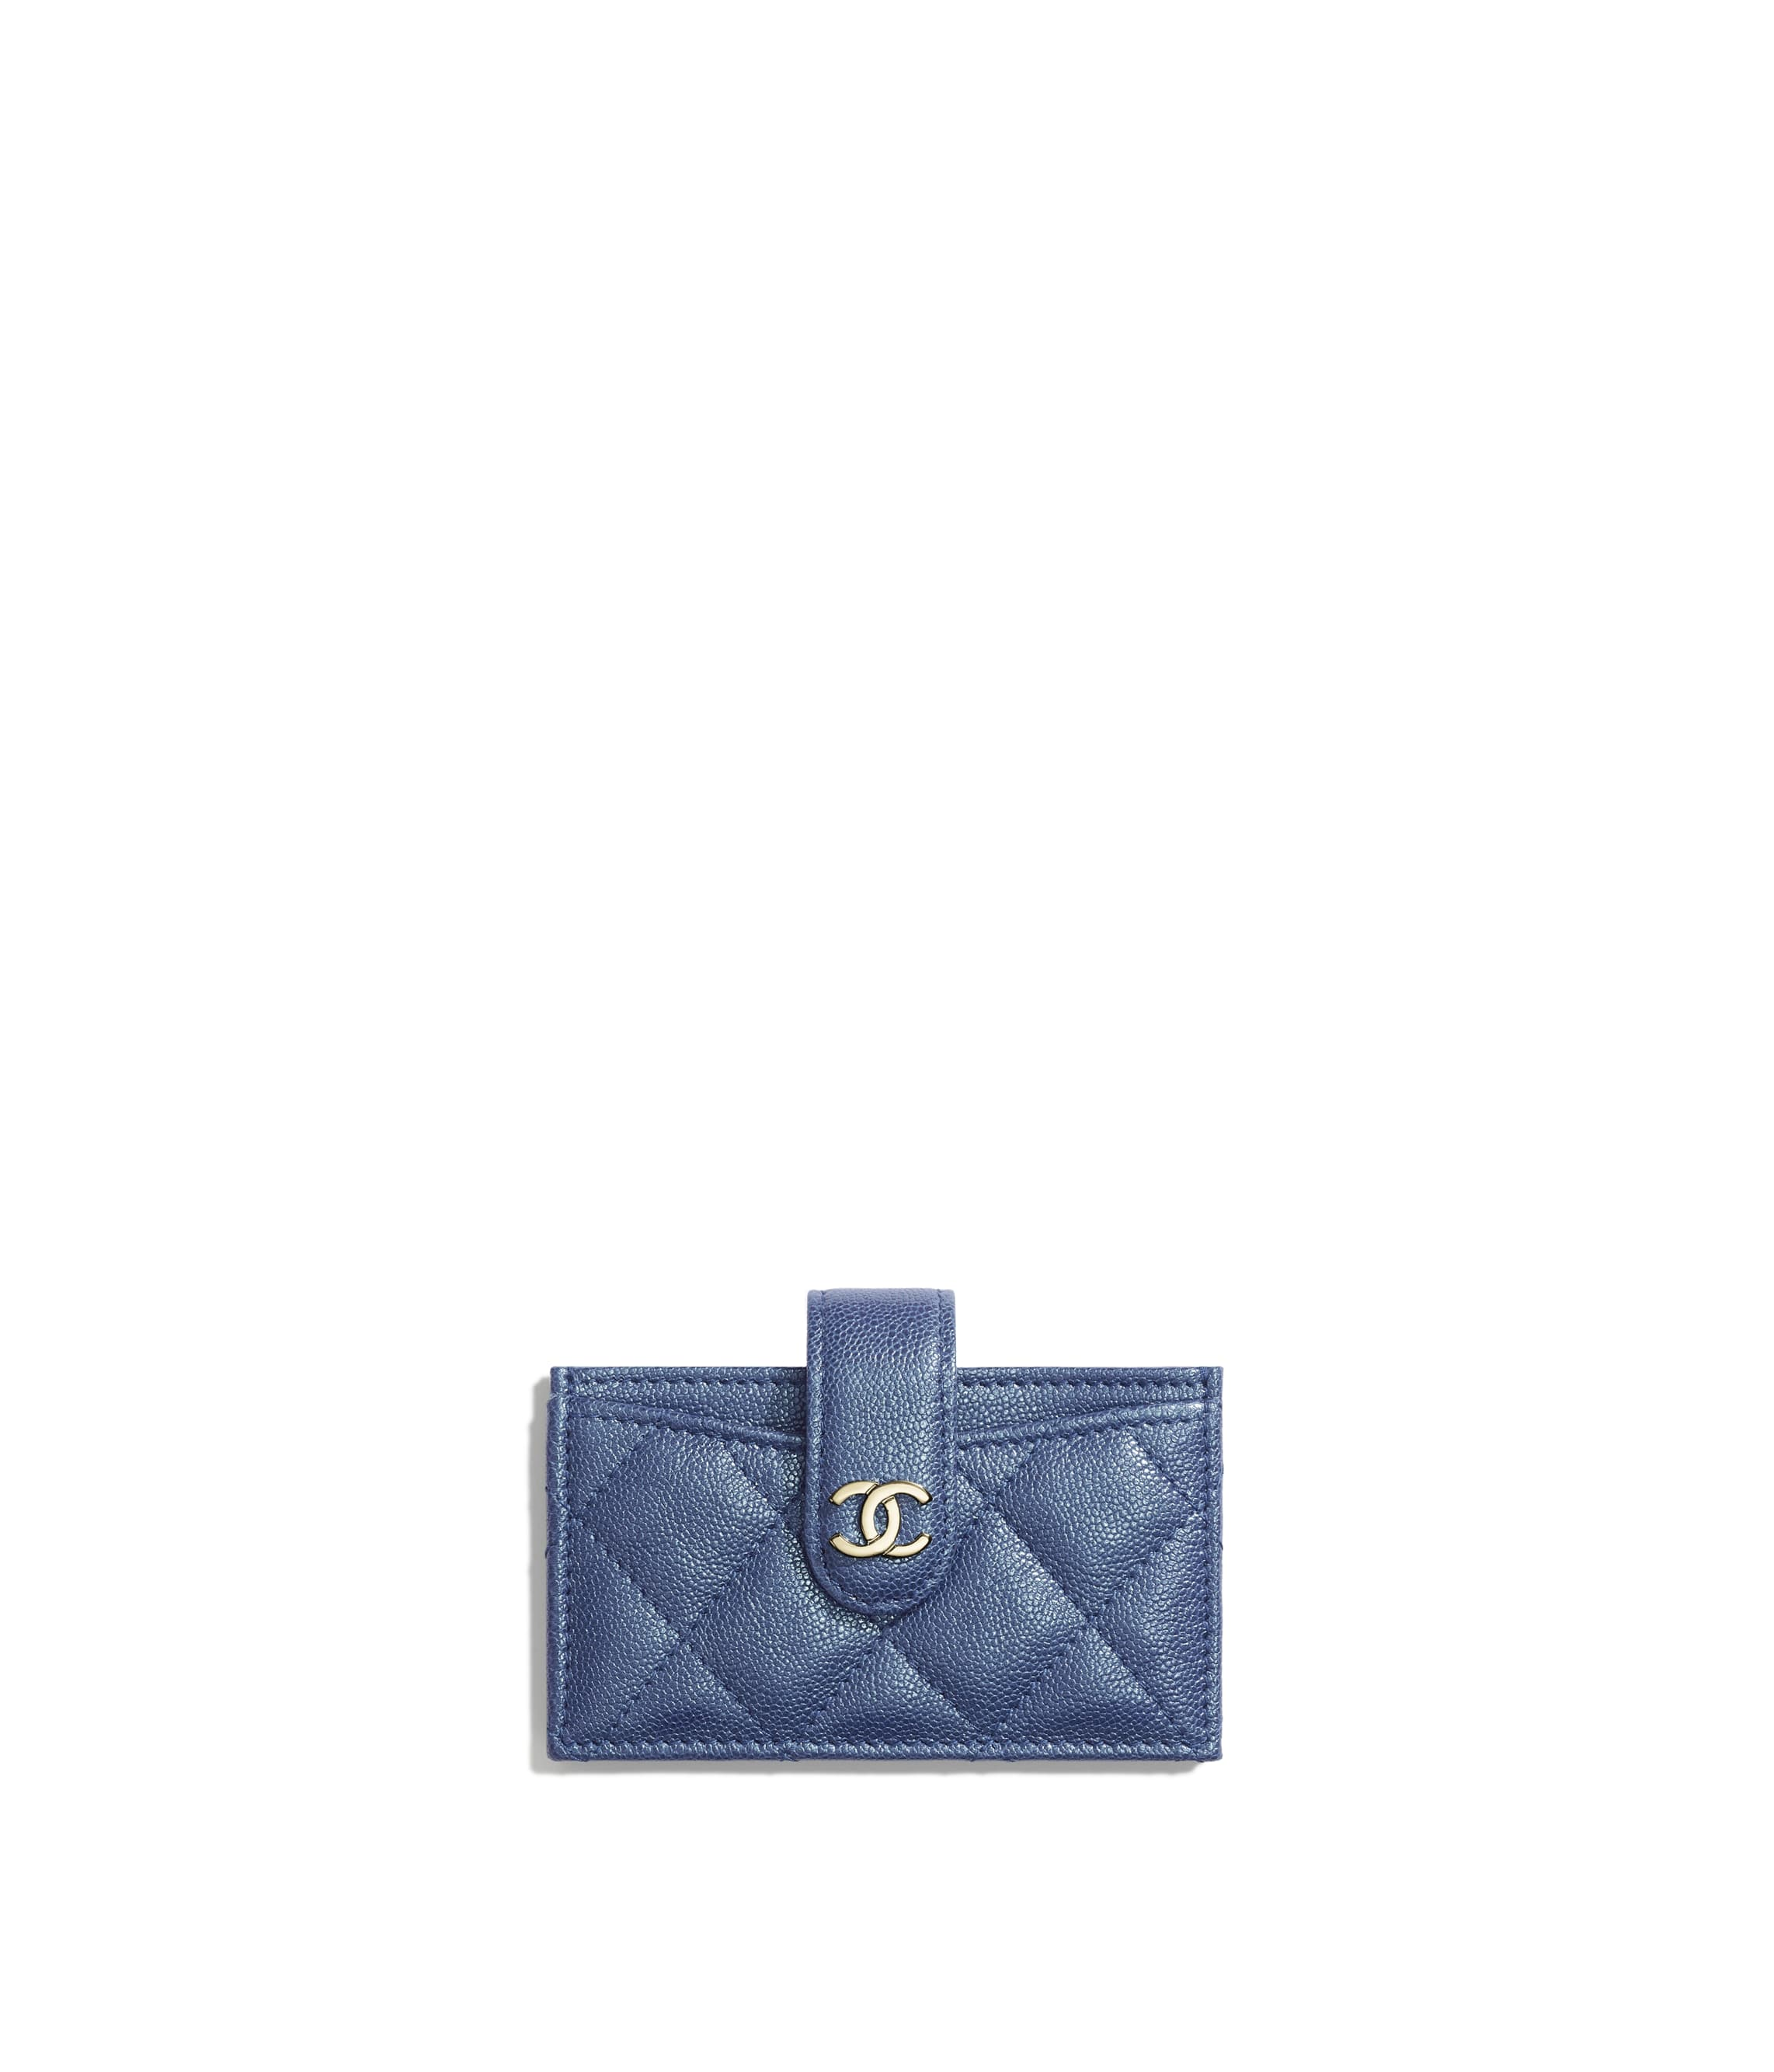 5dcb73a2bae0 Card Holders - Small Leather Goods - CHANEL